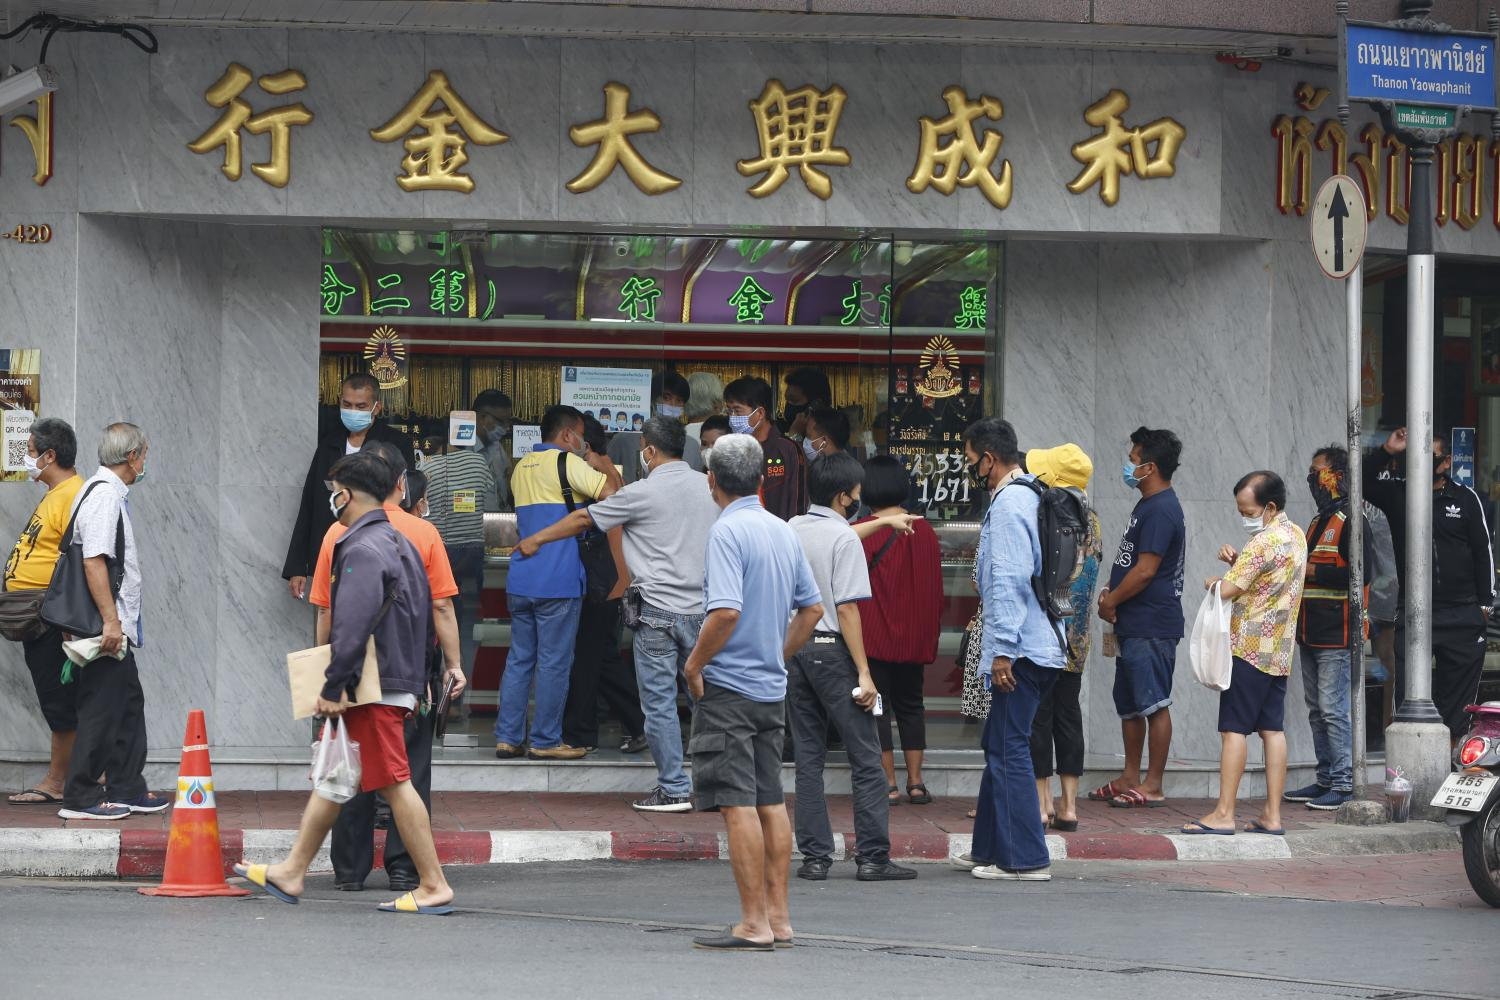 A long queue forms in front of the gold shops situated on Yaowarat Road, Chinatown on Wednesday.(Photo by Pornprom Satrabhaya)